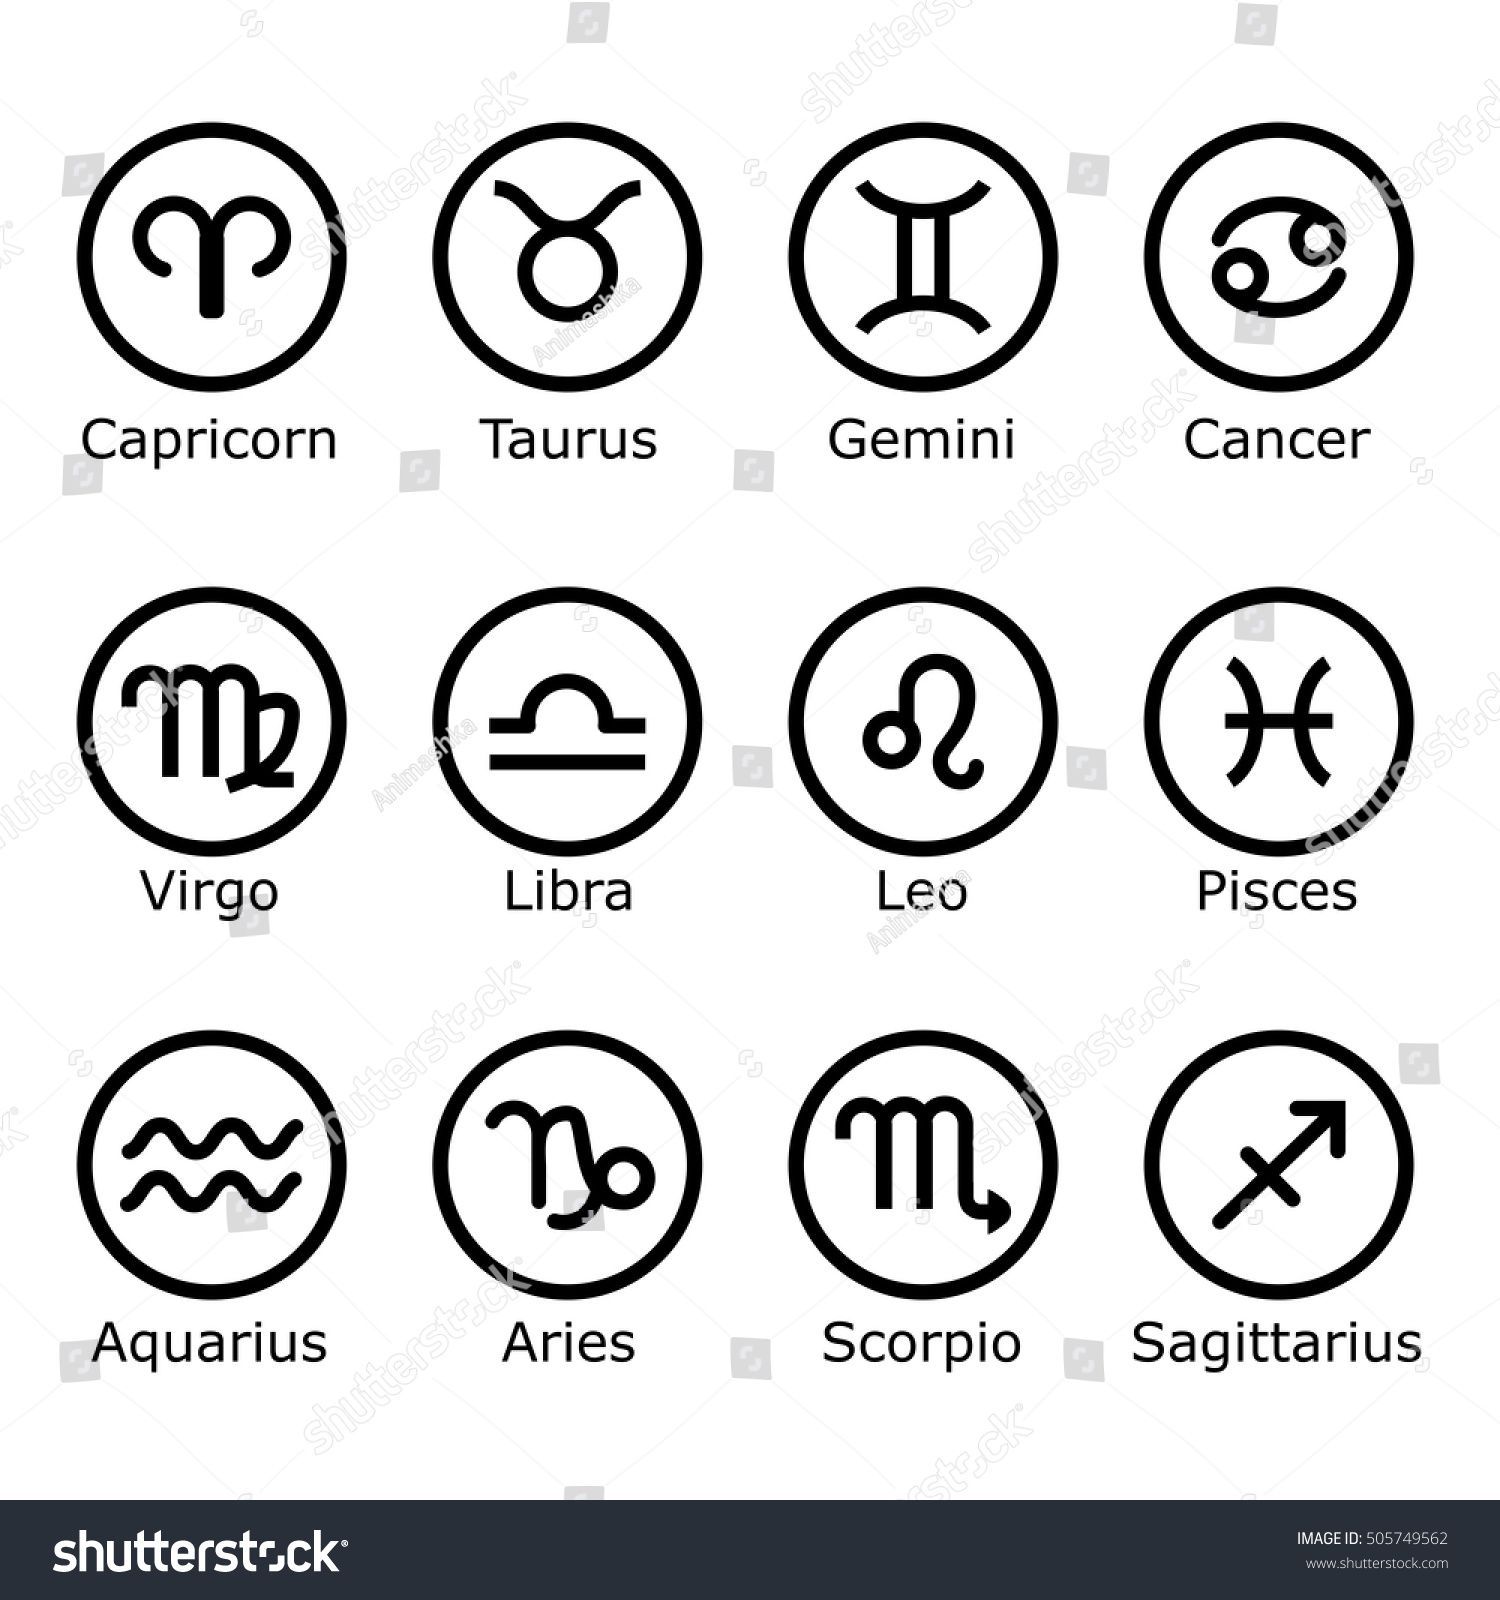 Zodiac signs and symbols astrology horoscope sign graphic zodiac signs and symbols astrology horoscope sign graphic design elements biocorpaavc Gallery